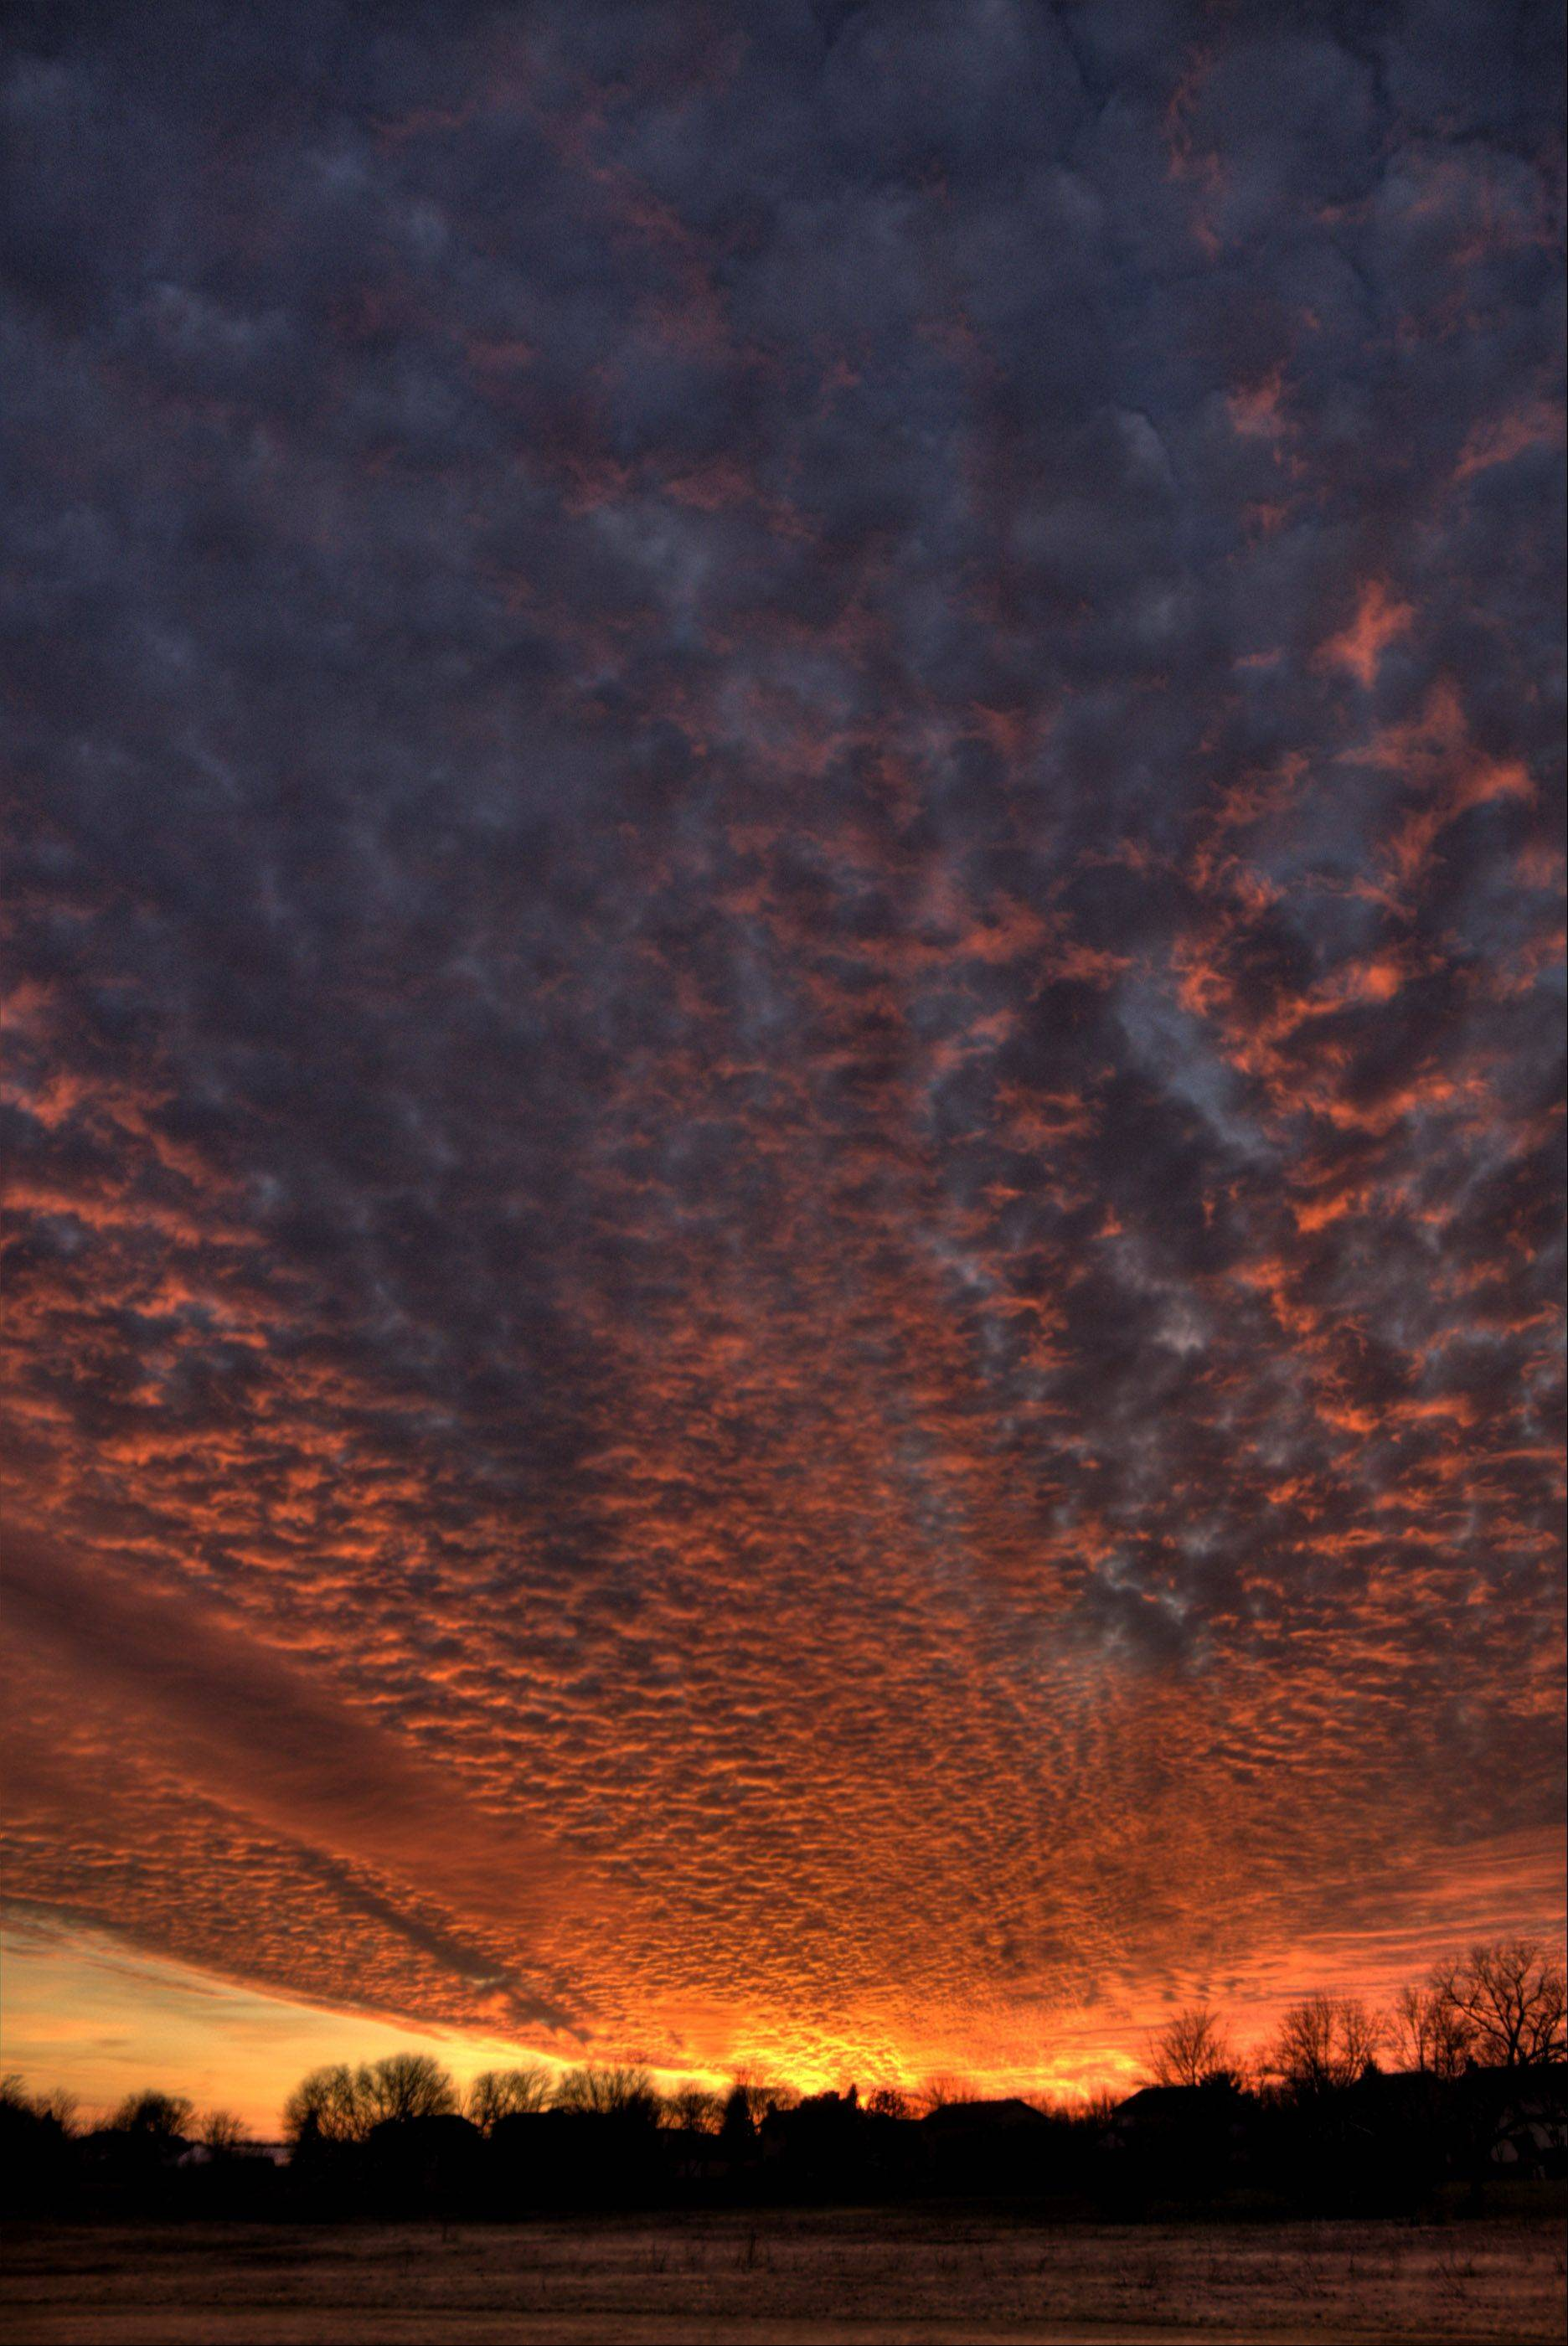 Here's a sunset captured near Kingsley Elementary School in Naperville. This photograph is comprised of twelve photographs taken at various exposures which were meshed together in Photoshop using the Photomatix HDR plug in.